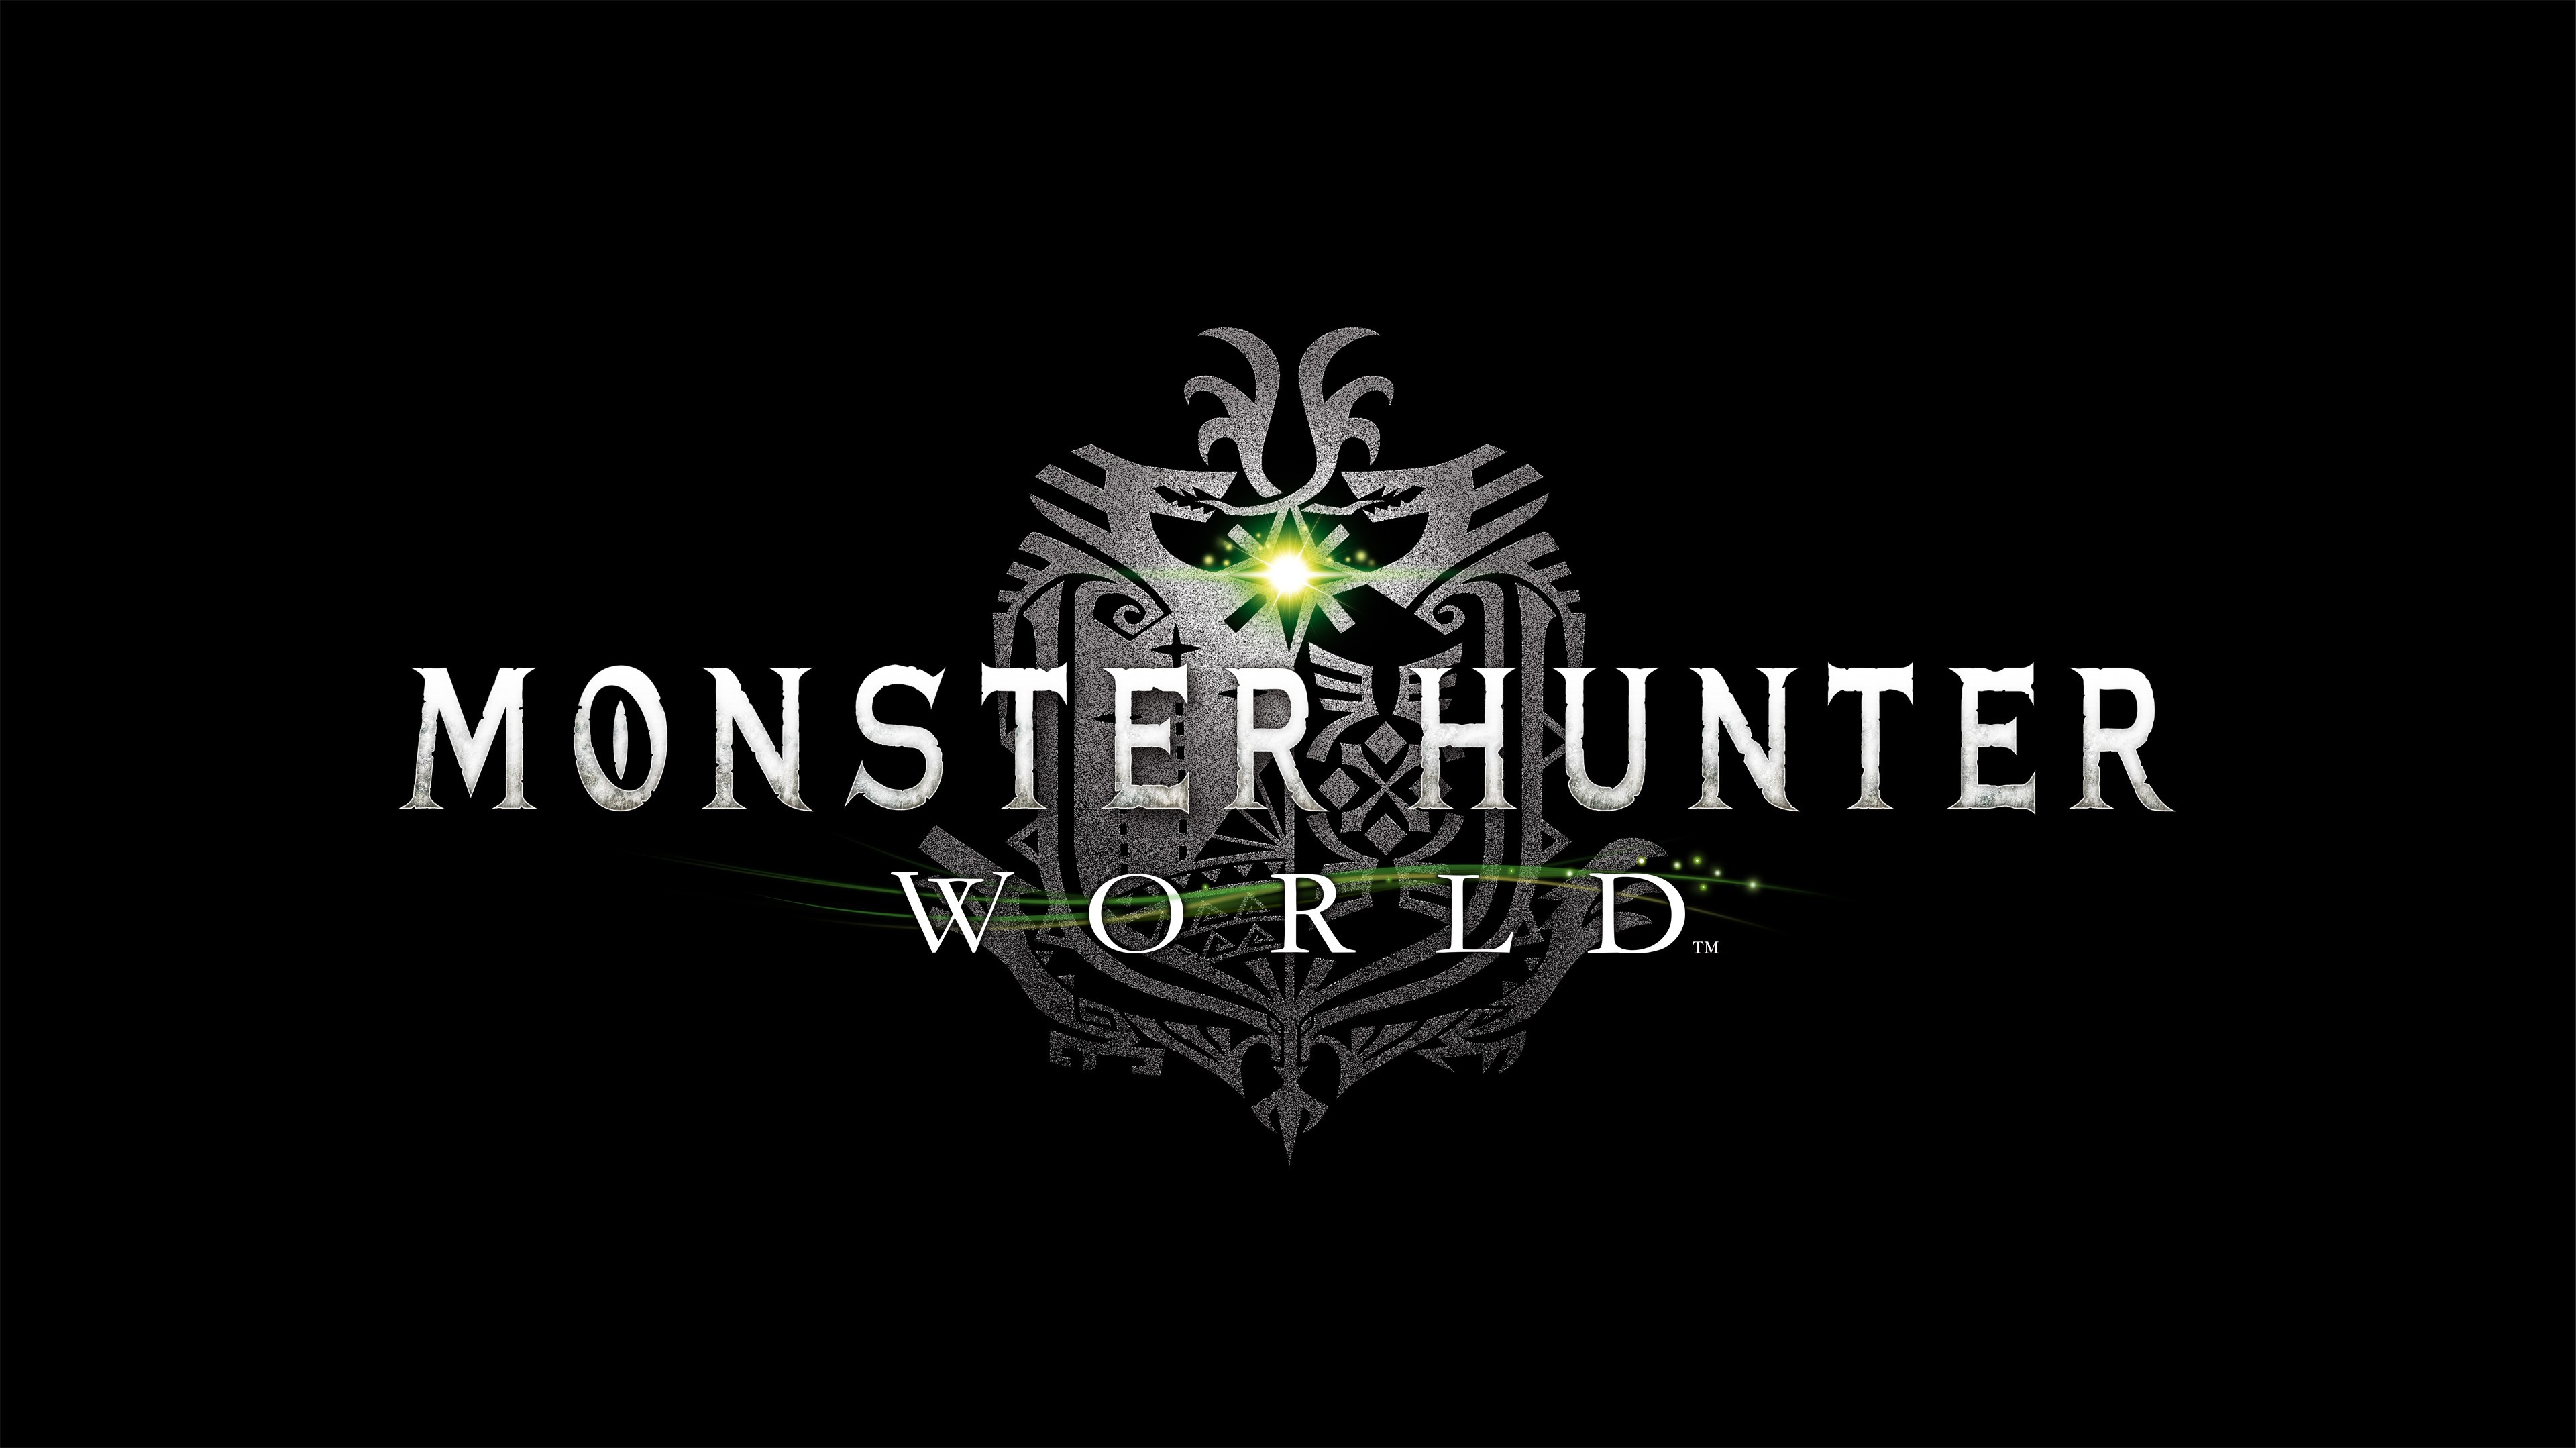 19 Monster Hunter World Hd Wallpapers Background Images